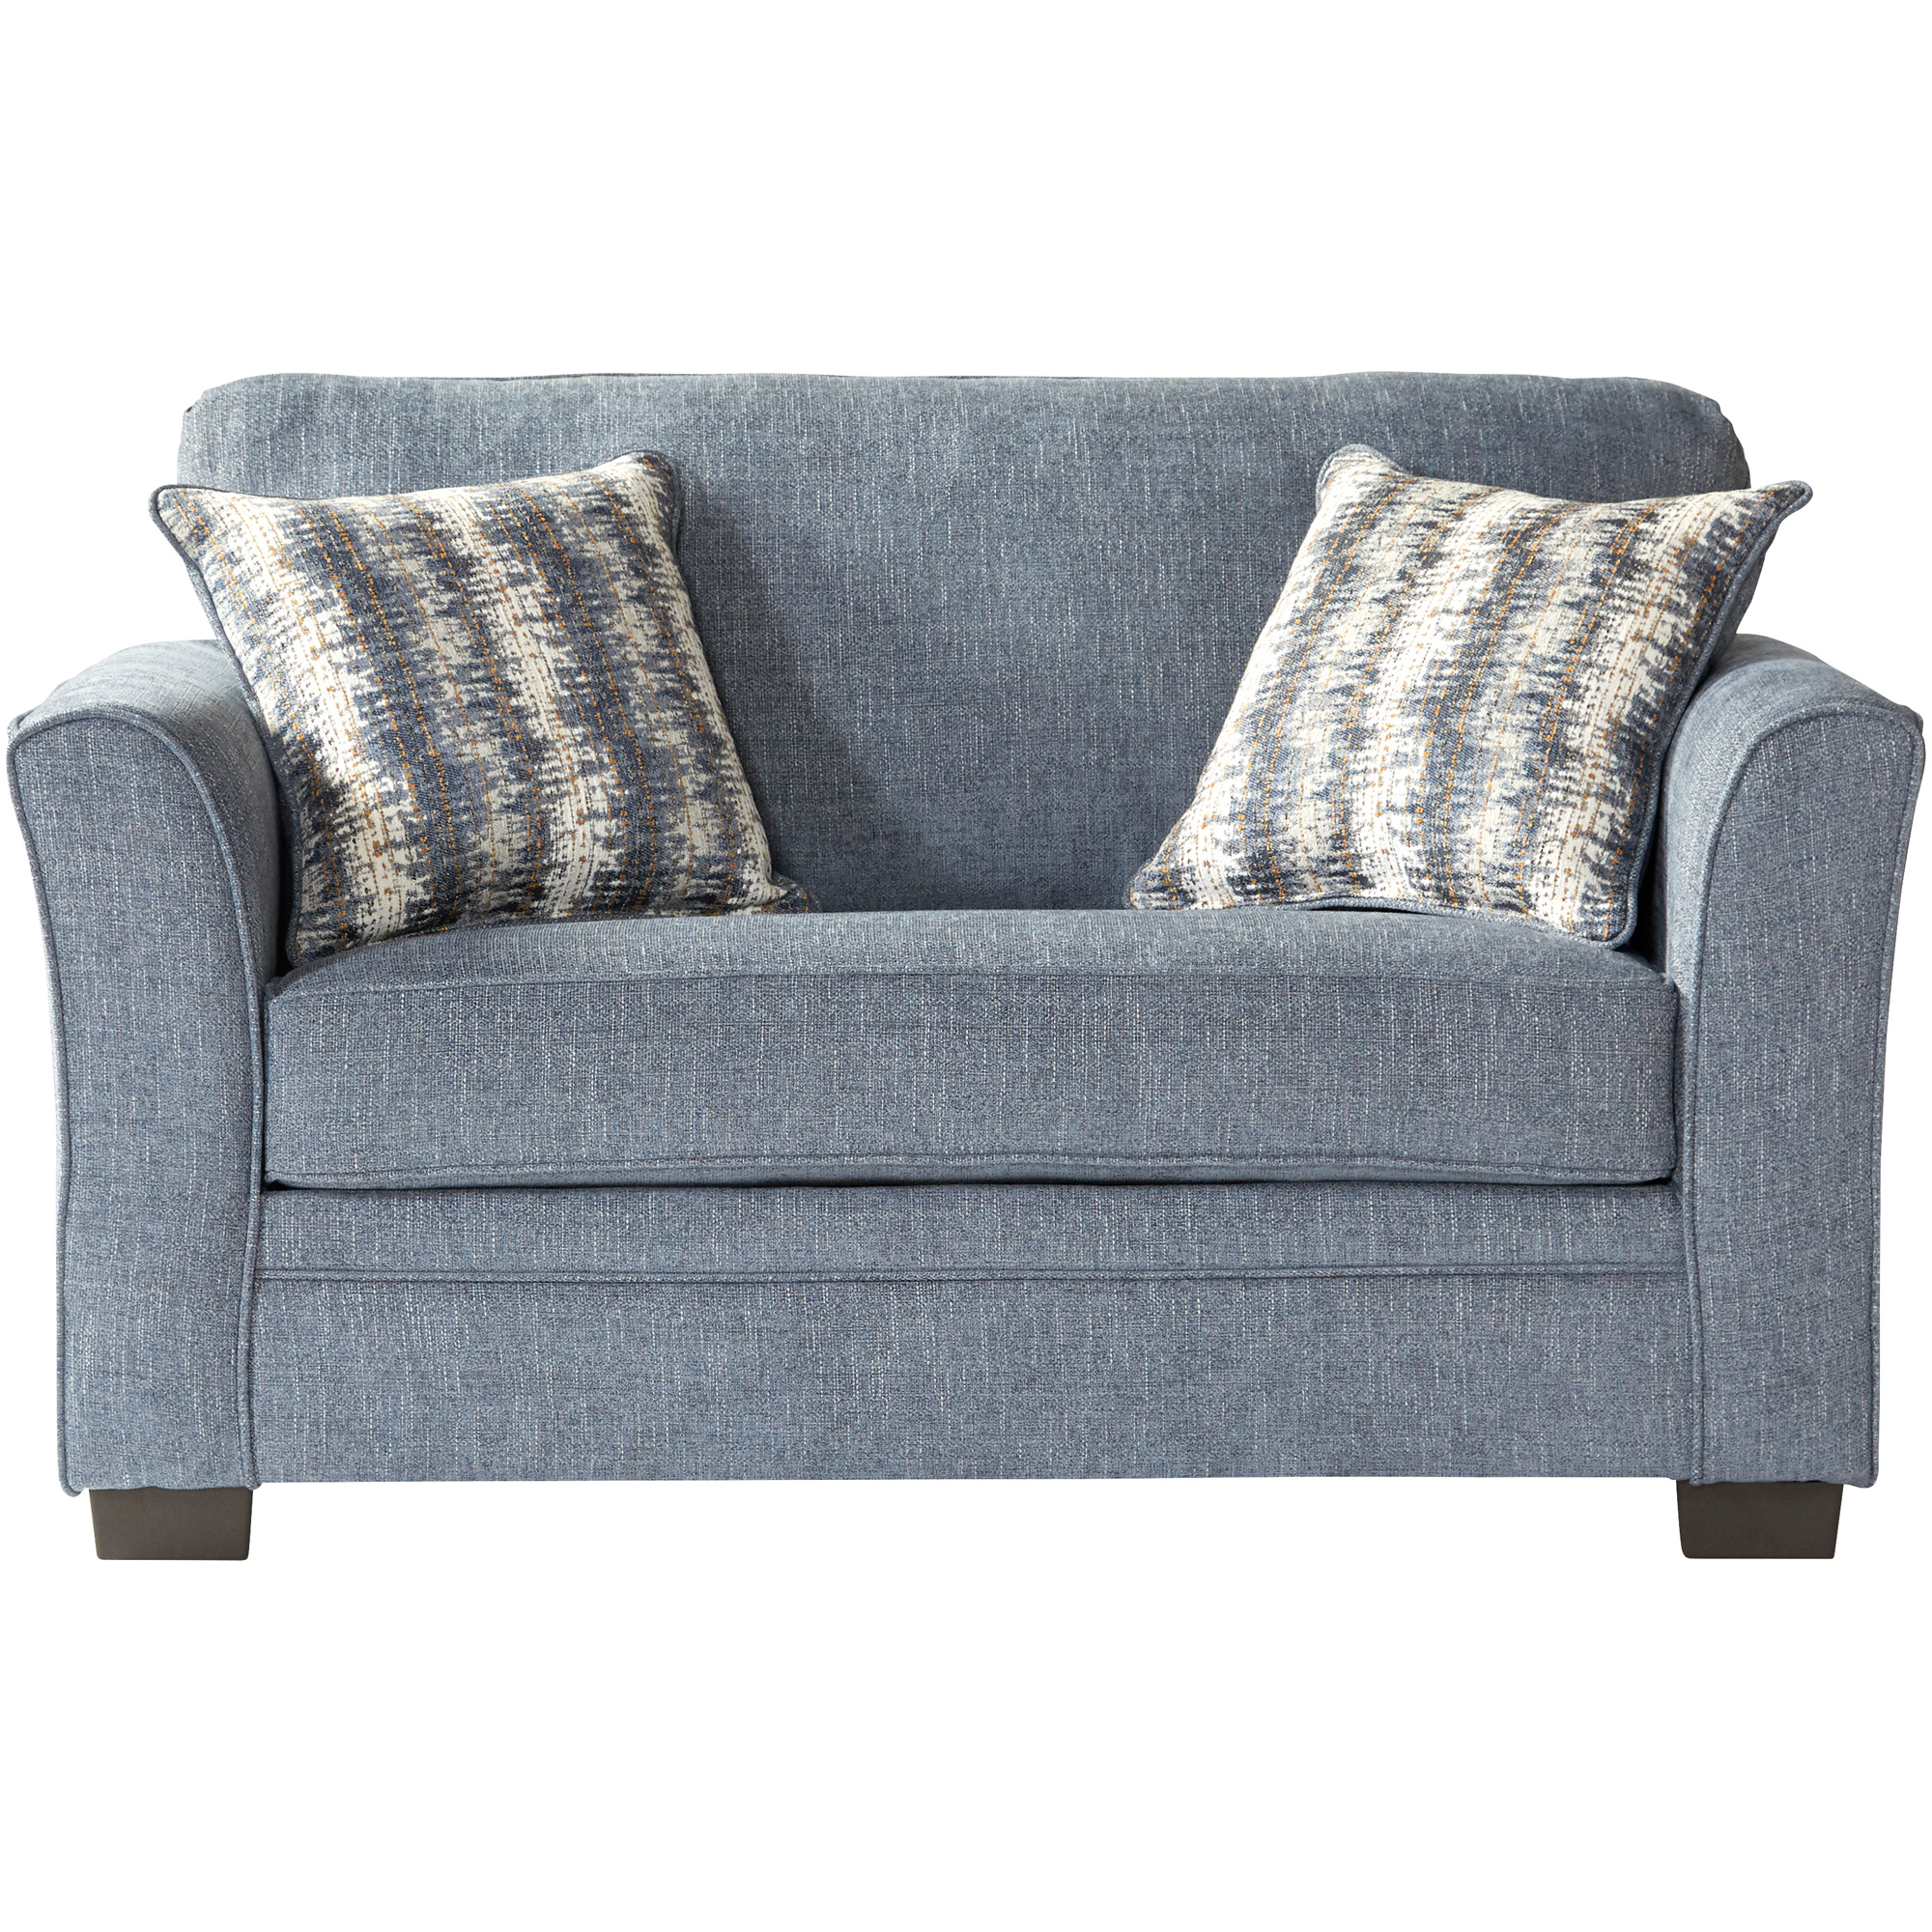 Serta Upholstery By Hughes Furniture | Bolster Ocean Twin Sleeper Sofa